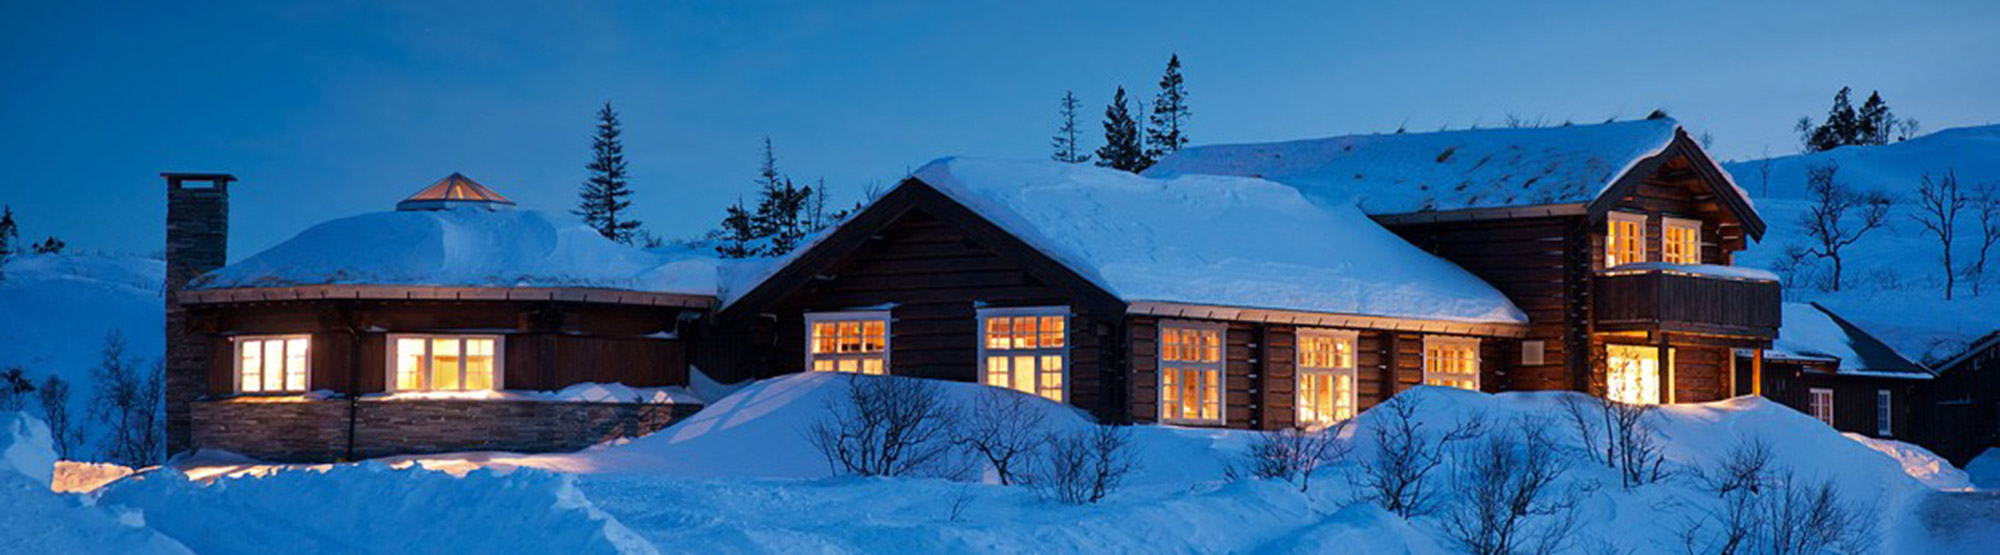 Ismenningen Lodge & Cabin rental in winter. Copyright: Ismenningen